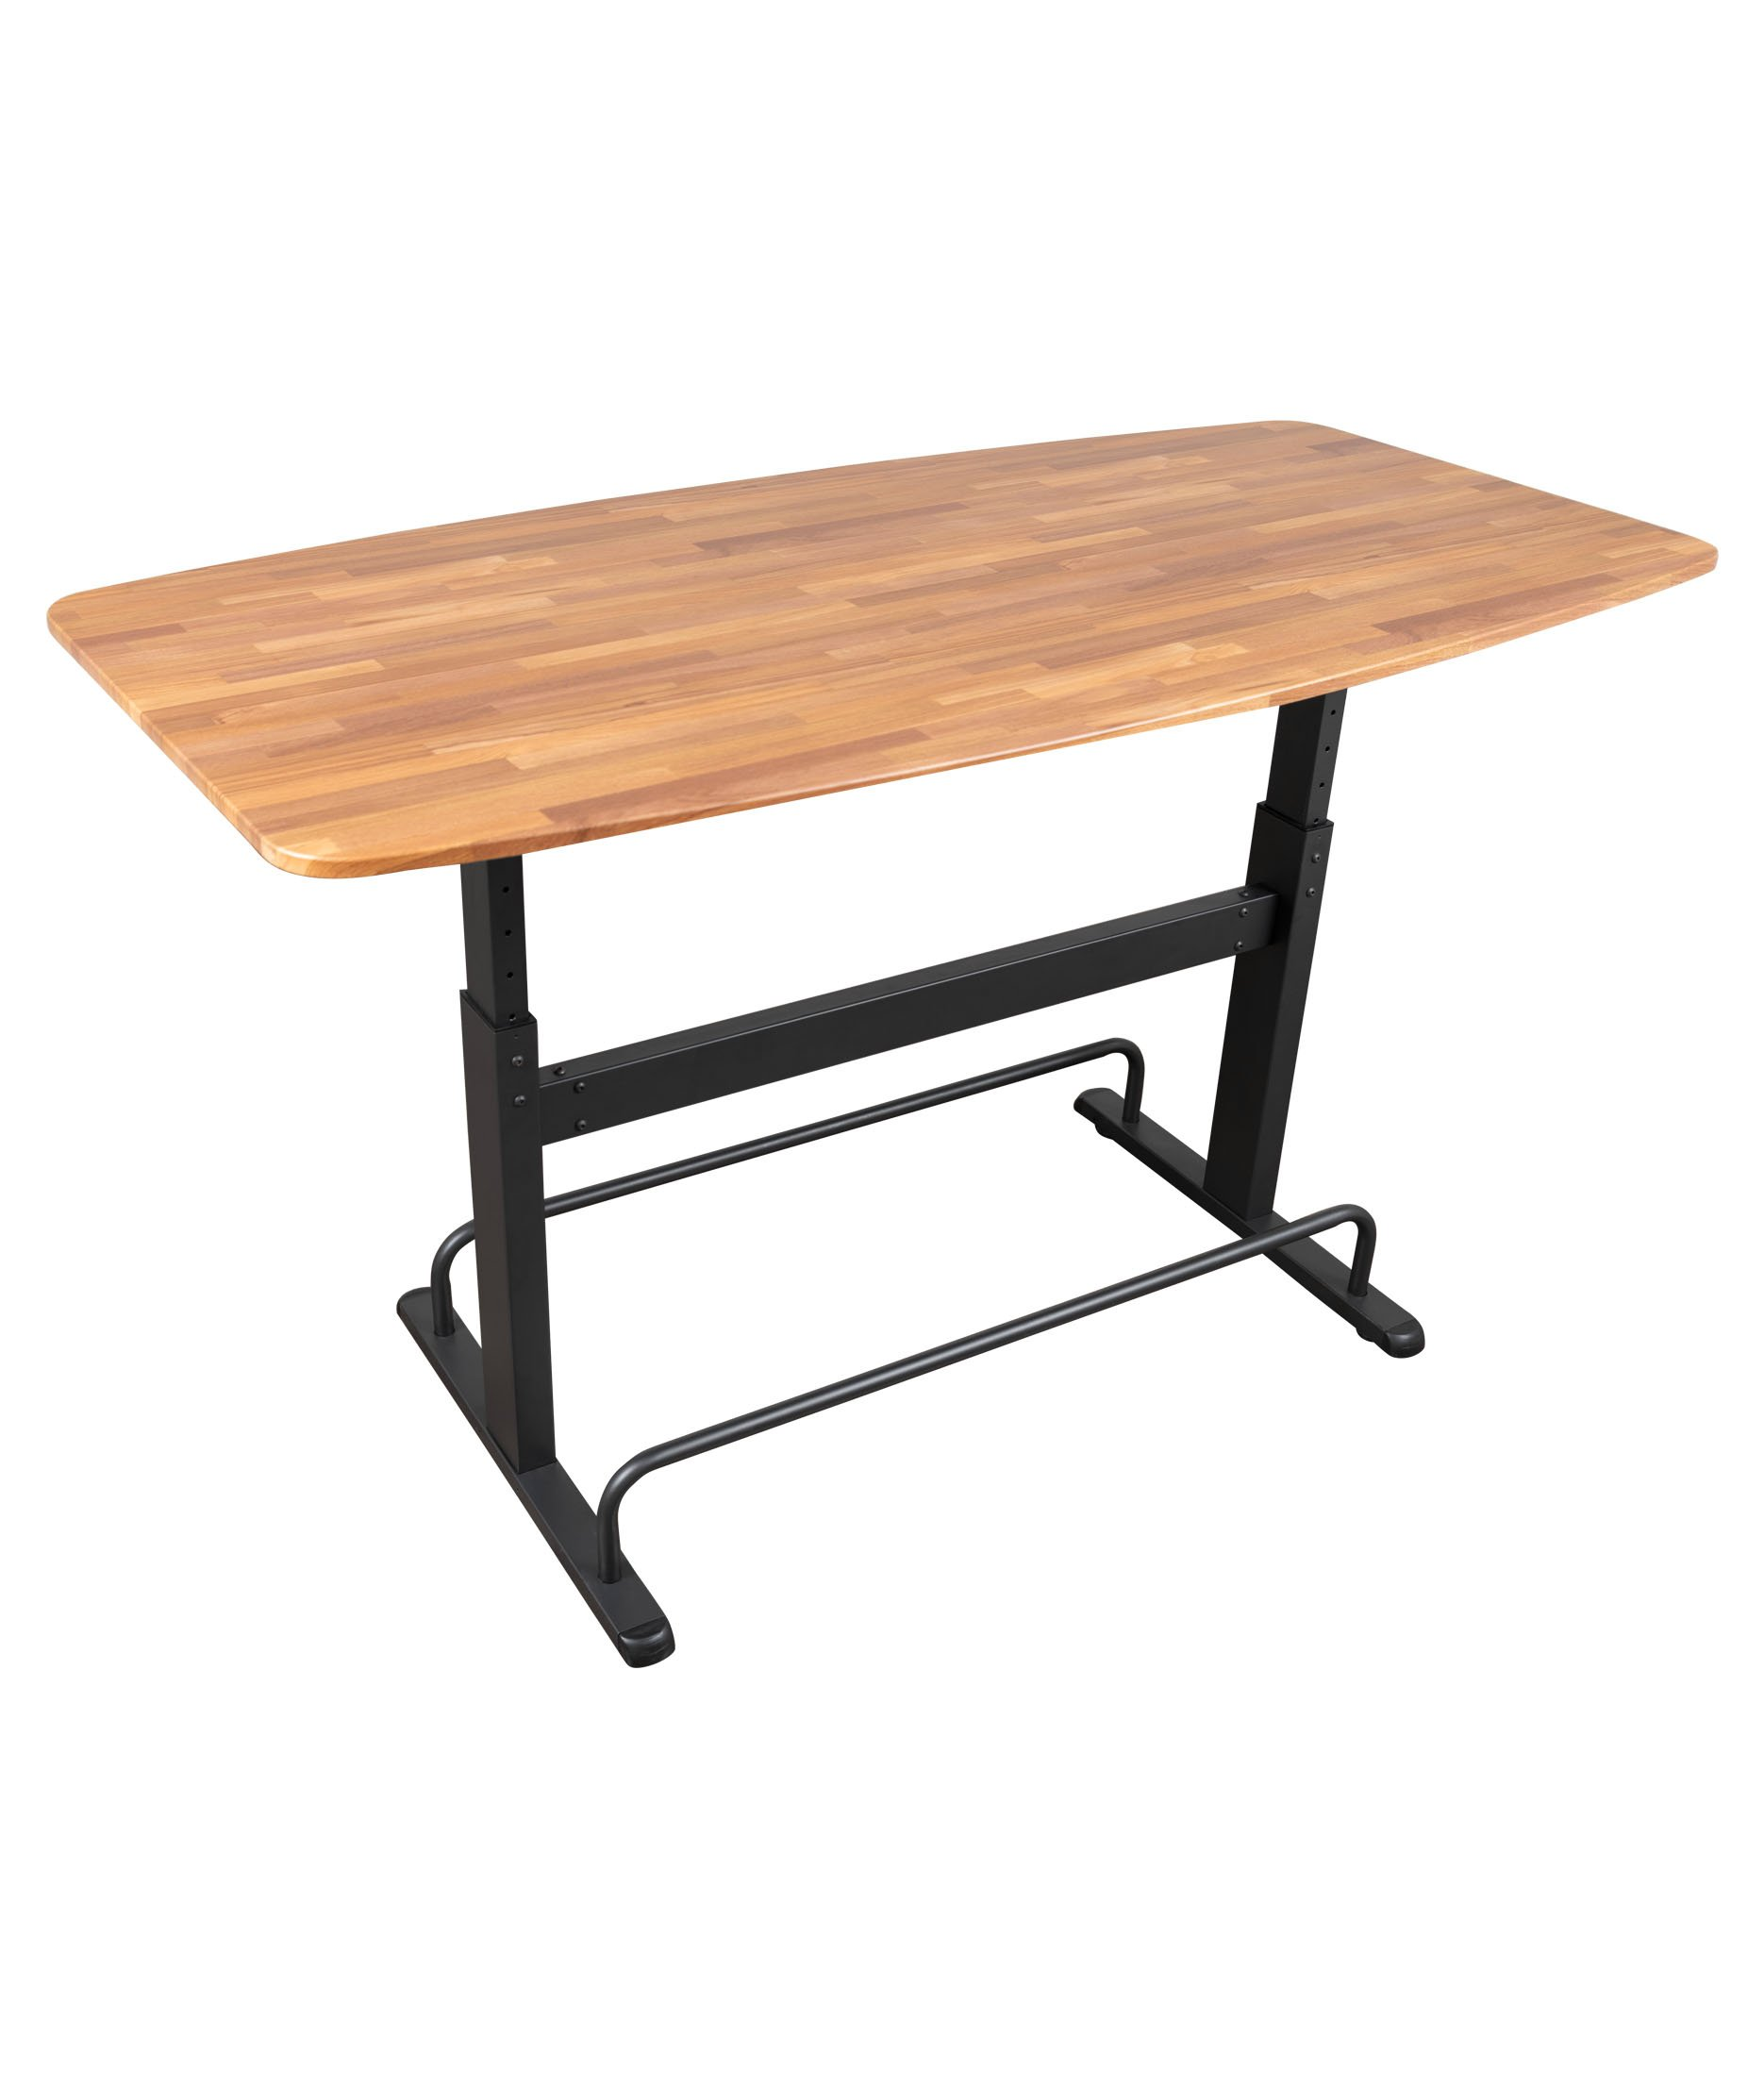 Height Adjustable Standing Conference Table | Meeting Table | Collaboration Table (72'') Fixed, Charcoal Frame/Butcher Block Top) by Stand Up Desk Store